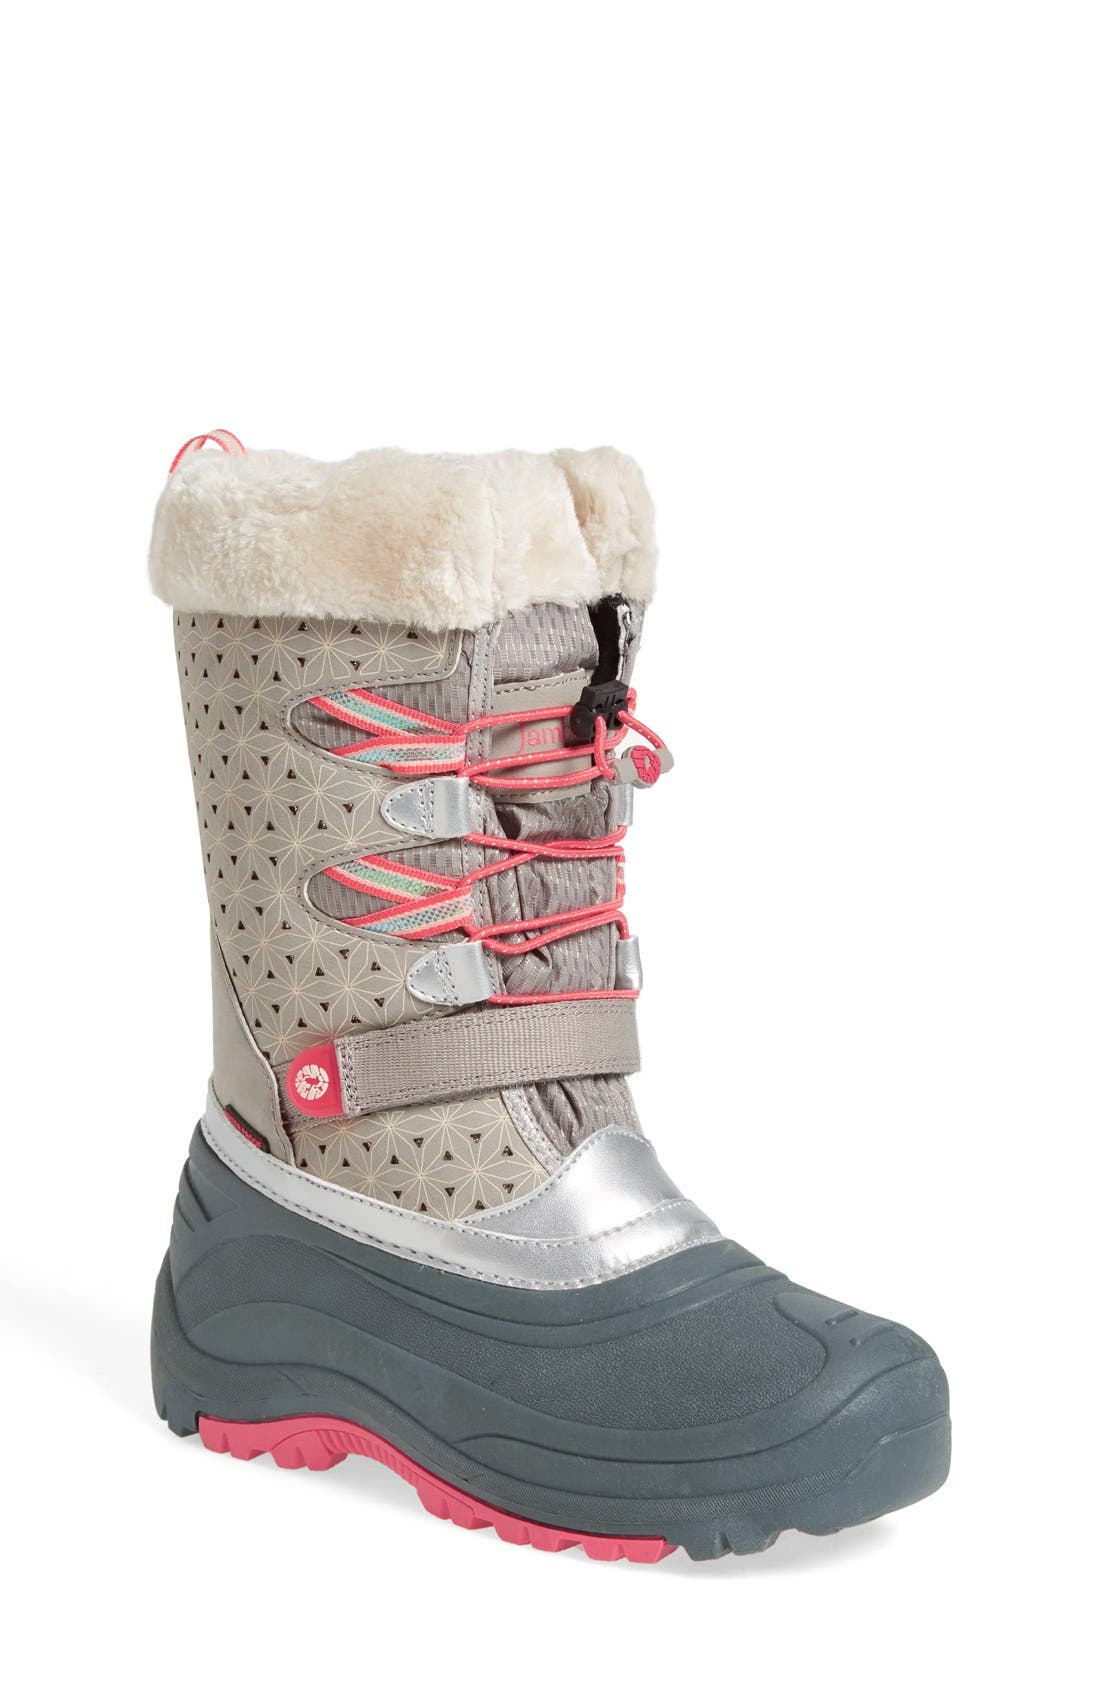 'Venom' Waterproof Insulated Snow Boot,                             Main thumbnail 1, color,                             Grey/ Pink